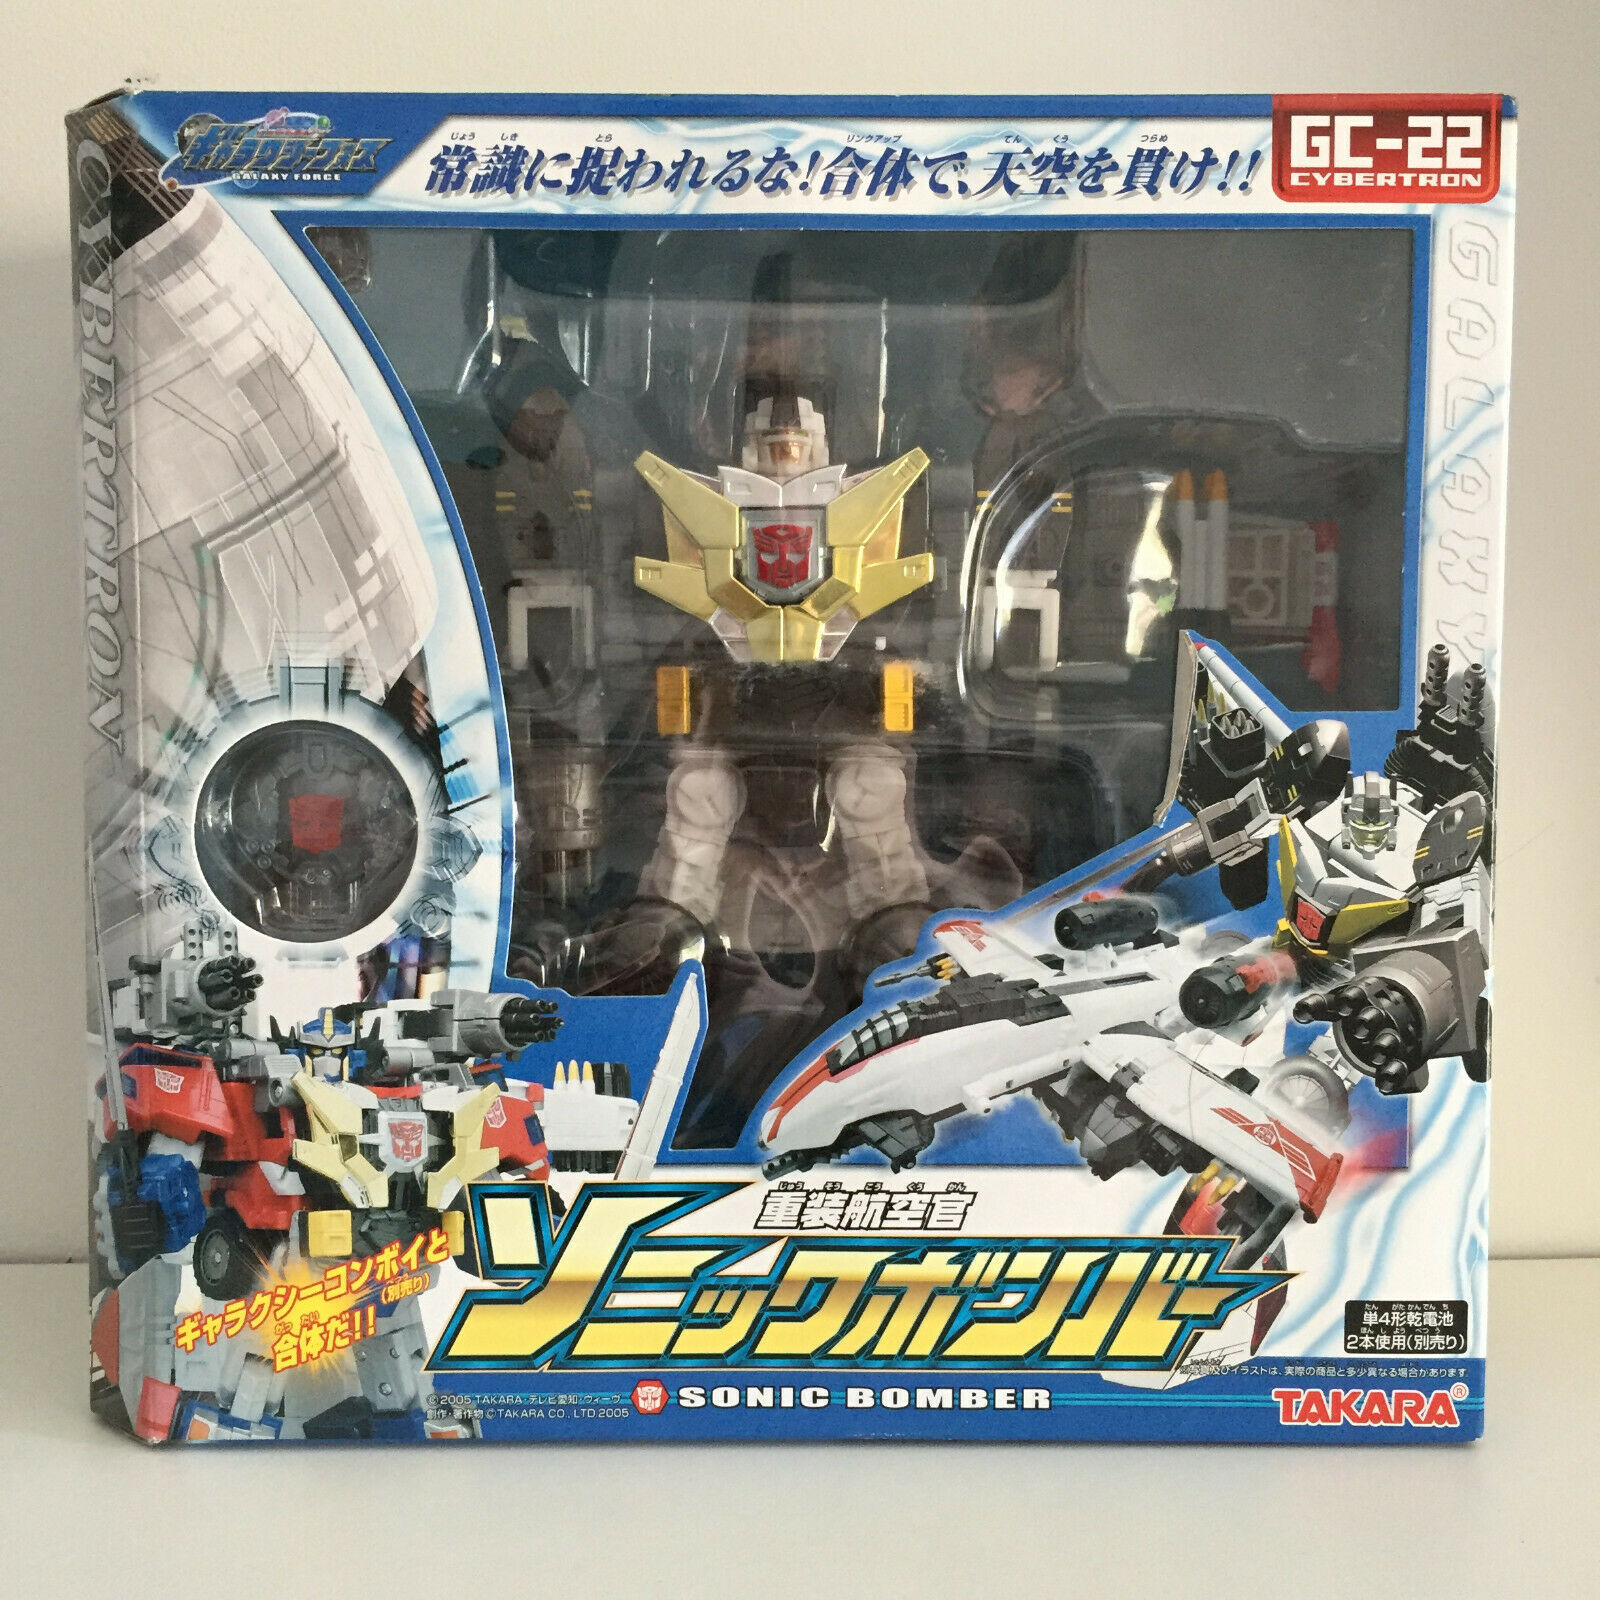 [NUOVO IN SCATOLA] Takara Transformers Galaxy Force GC22 Bomber Sonic